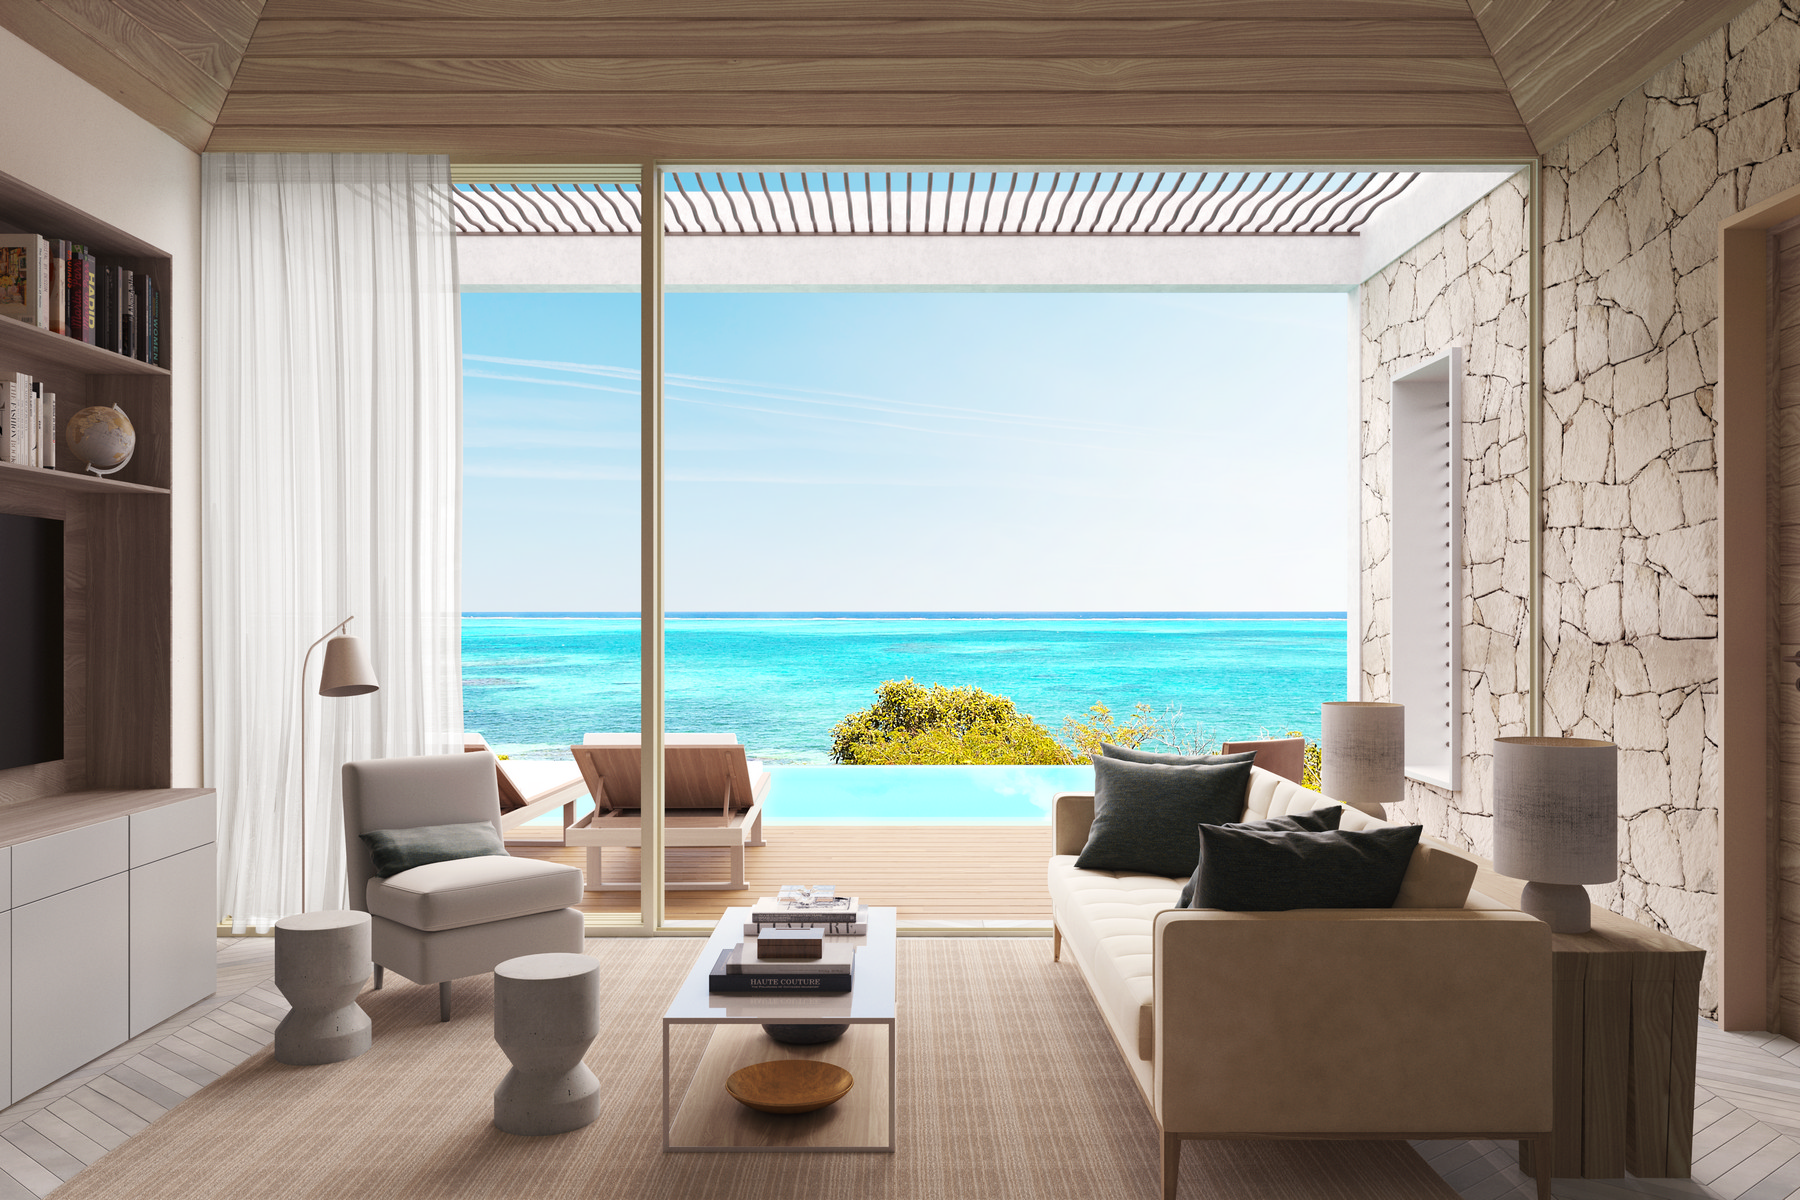 Single Family Home for Sale at Rock House Two Bedroom Blue Mountain, Providenciales Turks And Caicos Islands